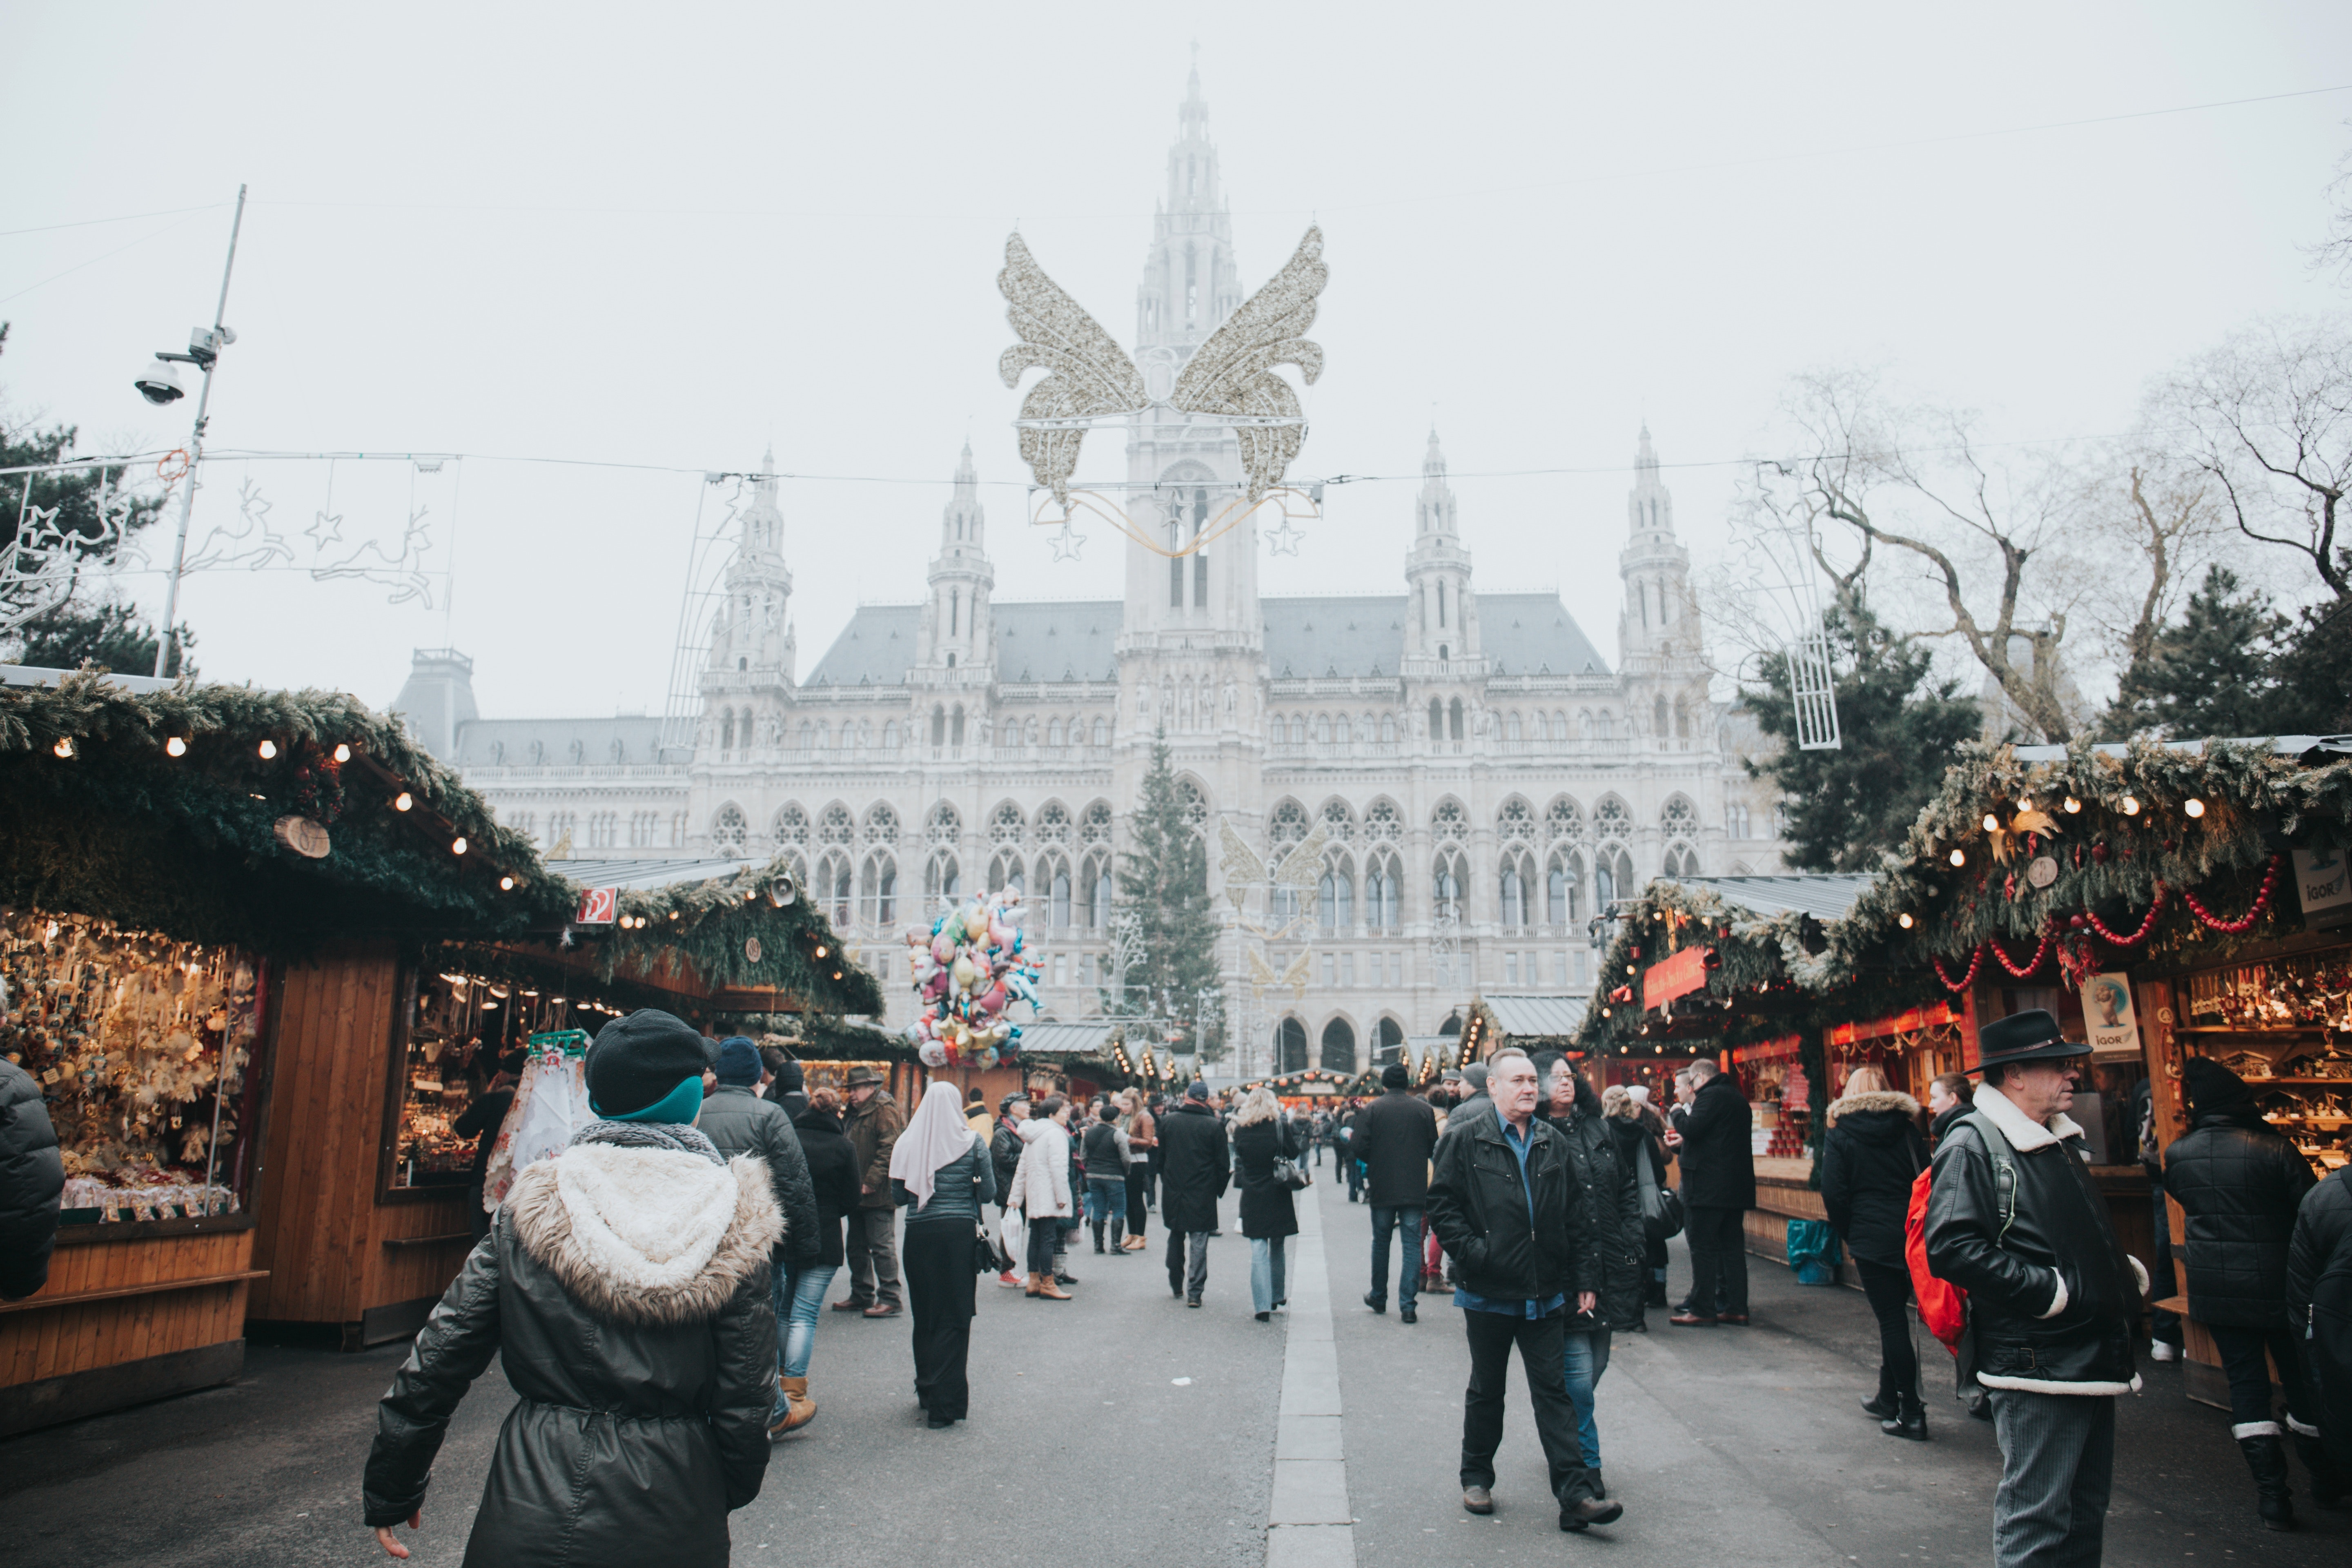 The Best Things About Christmas Markets